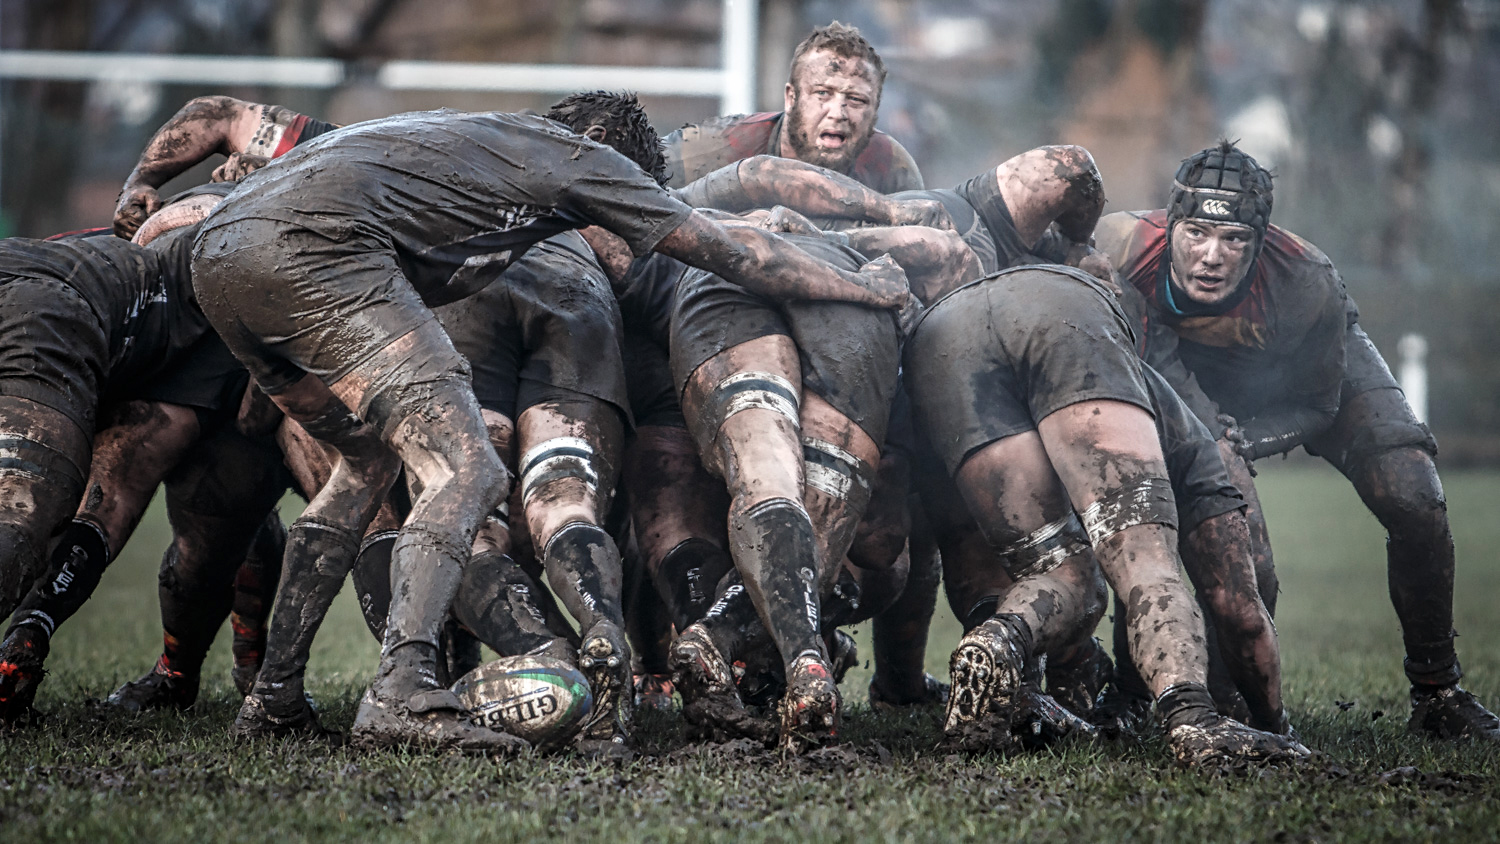 Harrogate's Willem Enslin (left) and Jonny Coser peer round the mudded scrum